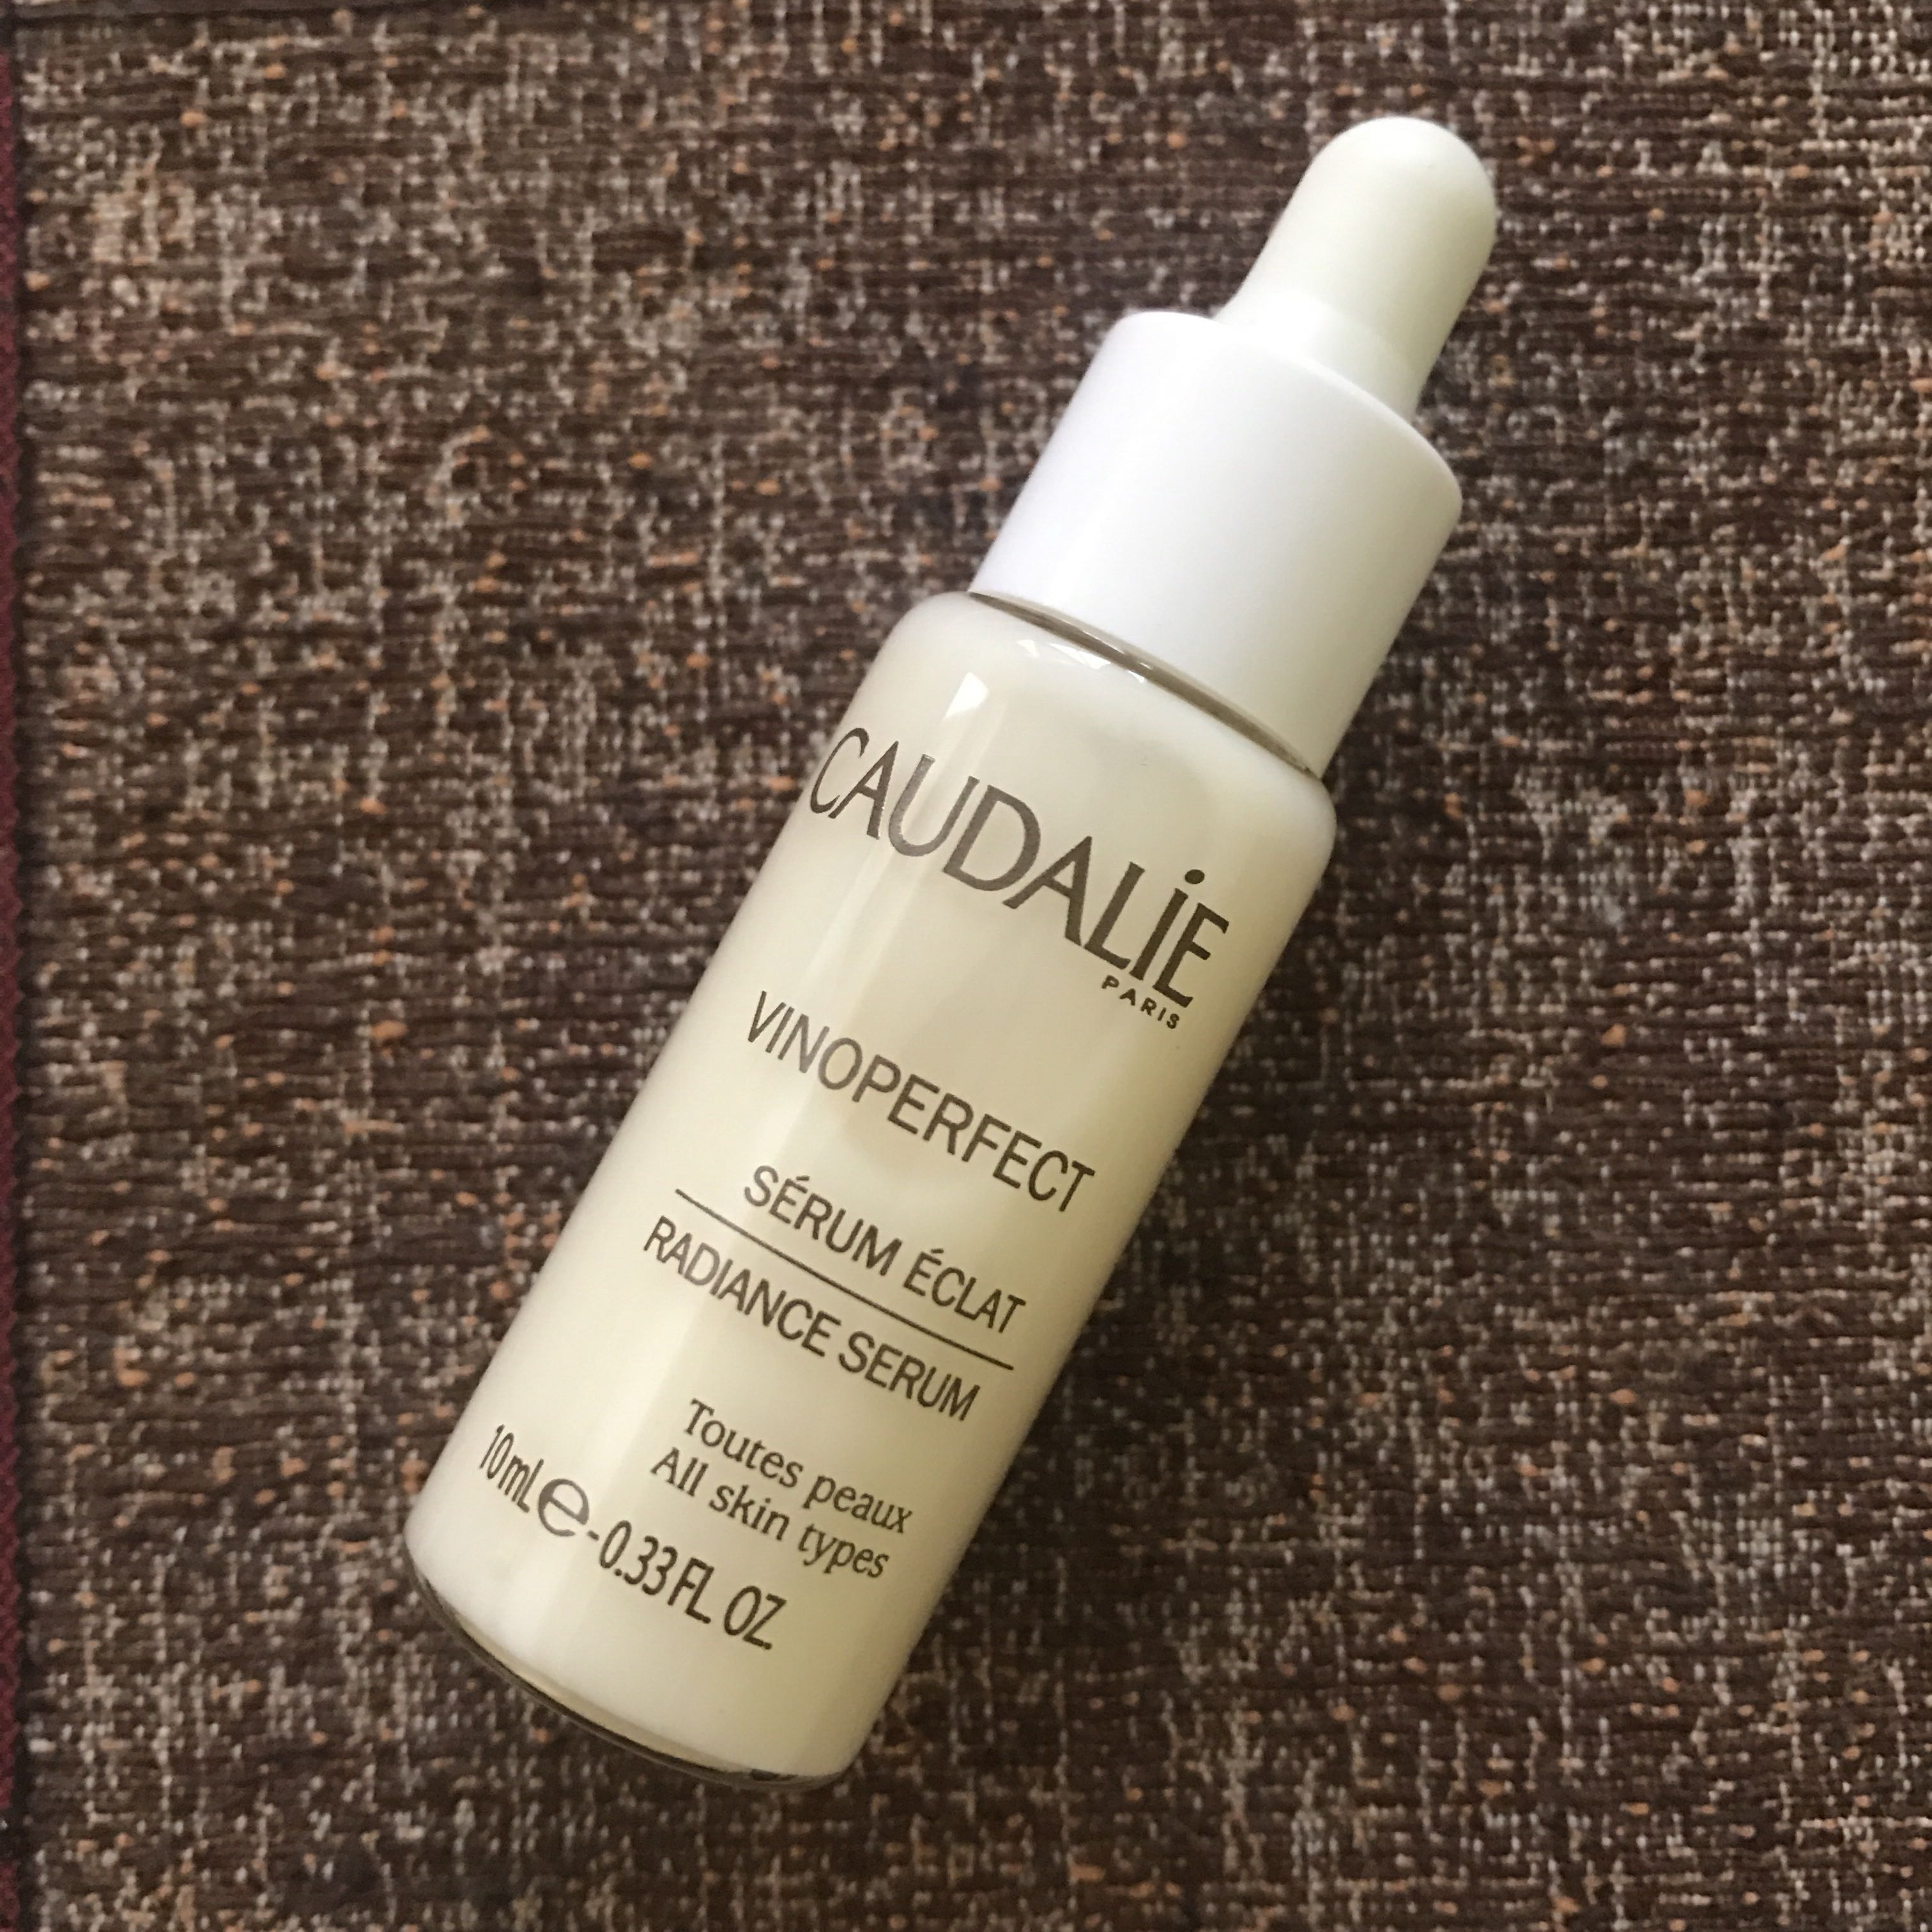 #Easter20 Caudalíe Radiance Serum 10ml